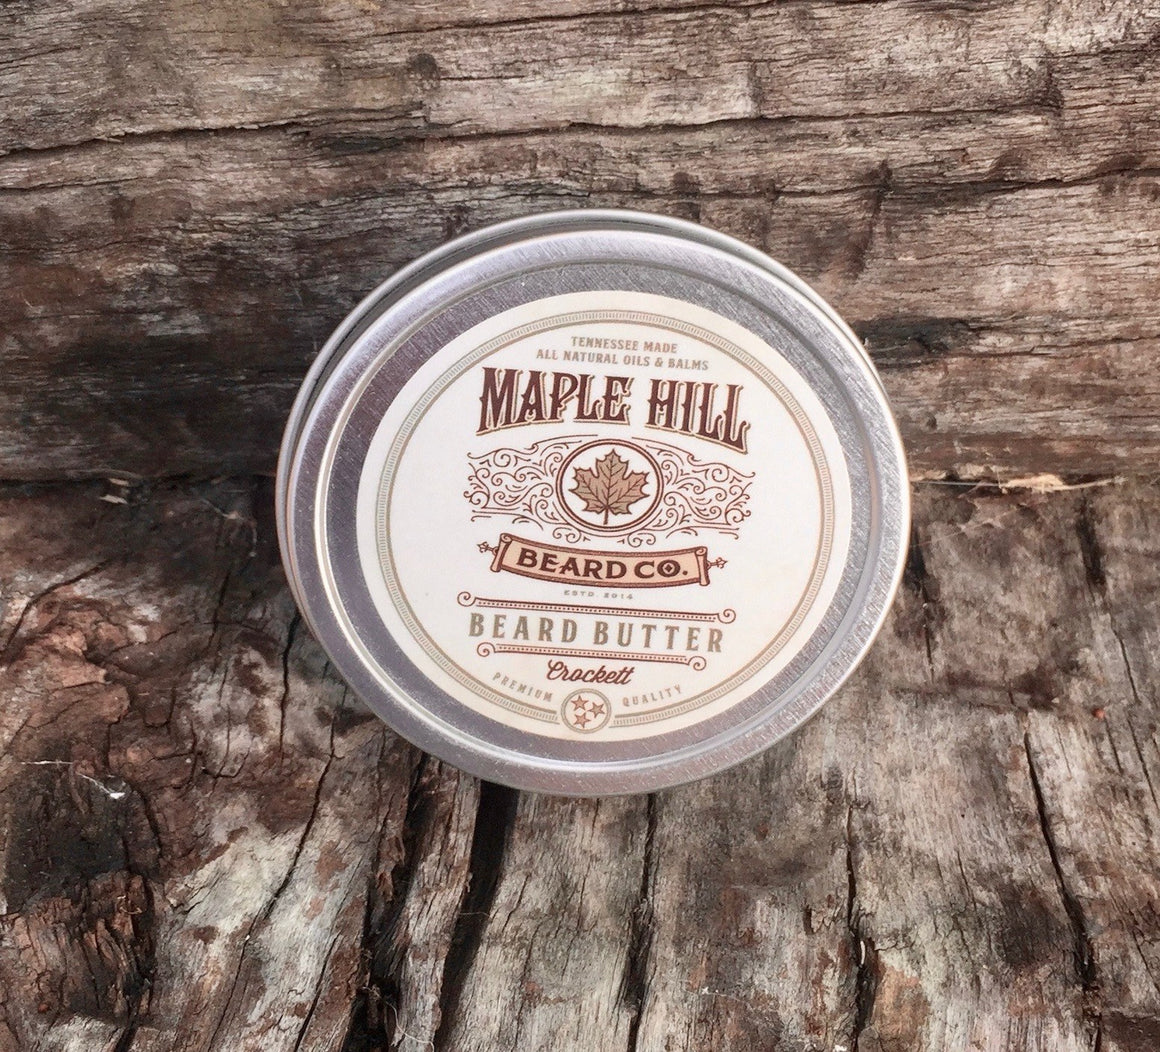 Beard Butter - Crockett Beard Butter - 1 Fl Oz / 30 Ml